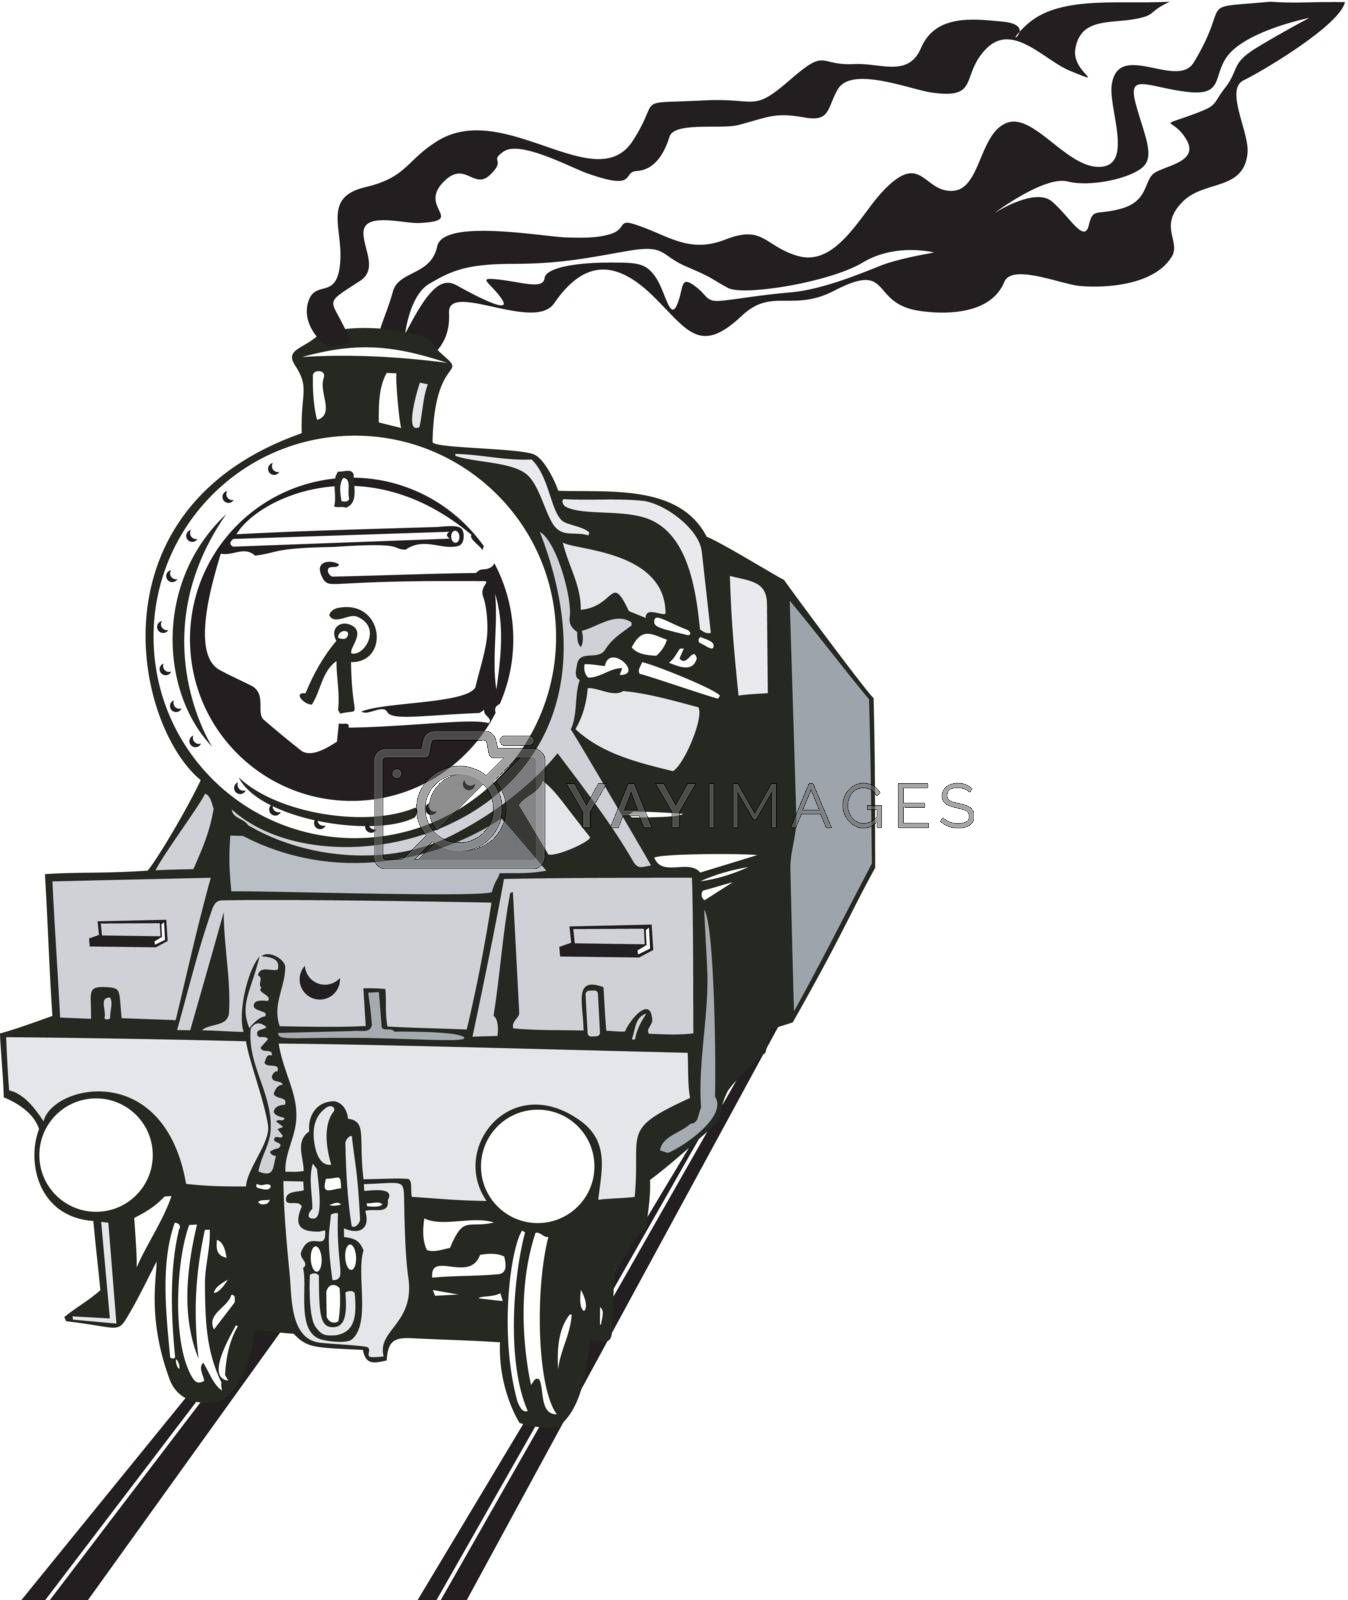 Illustration of a vintage train front view in black and white on isolated background done in retro style.